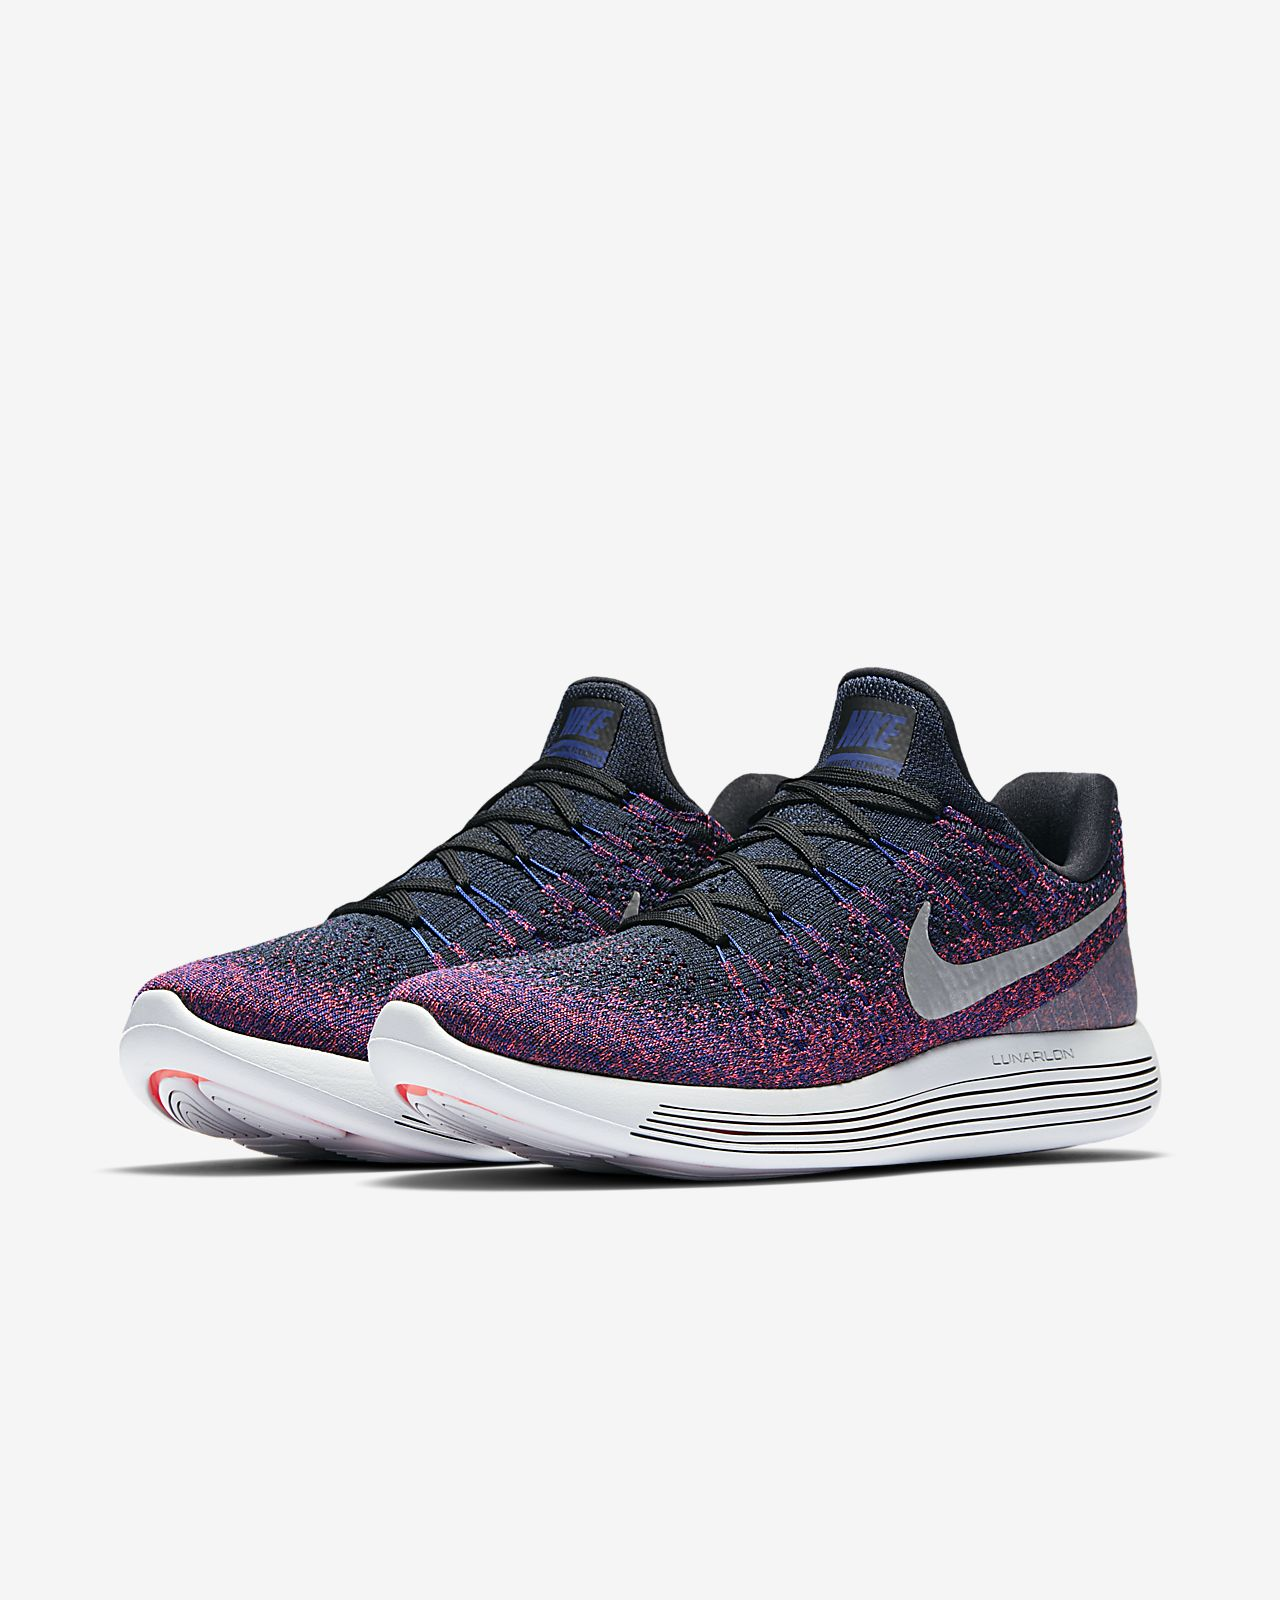 ... Nike LunarEpic Low Flyknit 2 Men's Running Shoe